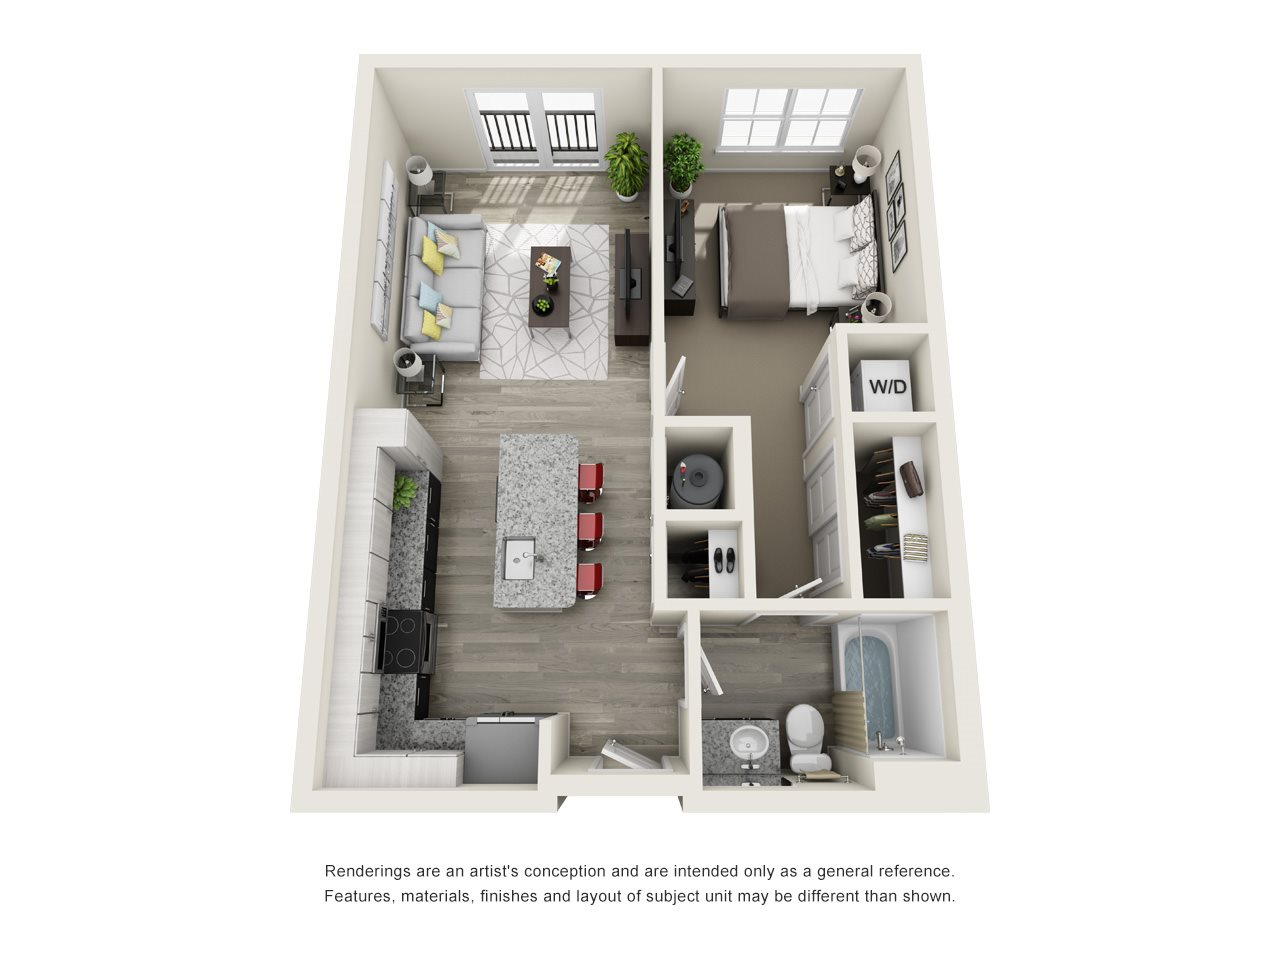 1 Bedroom, 1 Bath 704 sqft Floor Plan 6